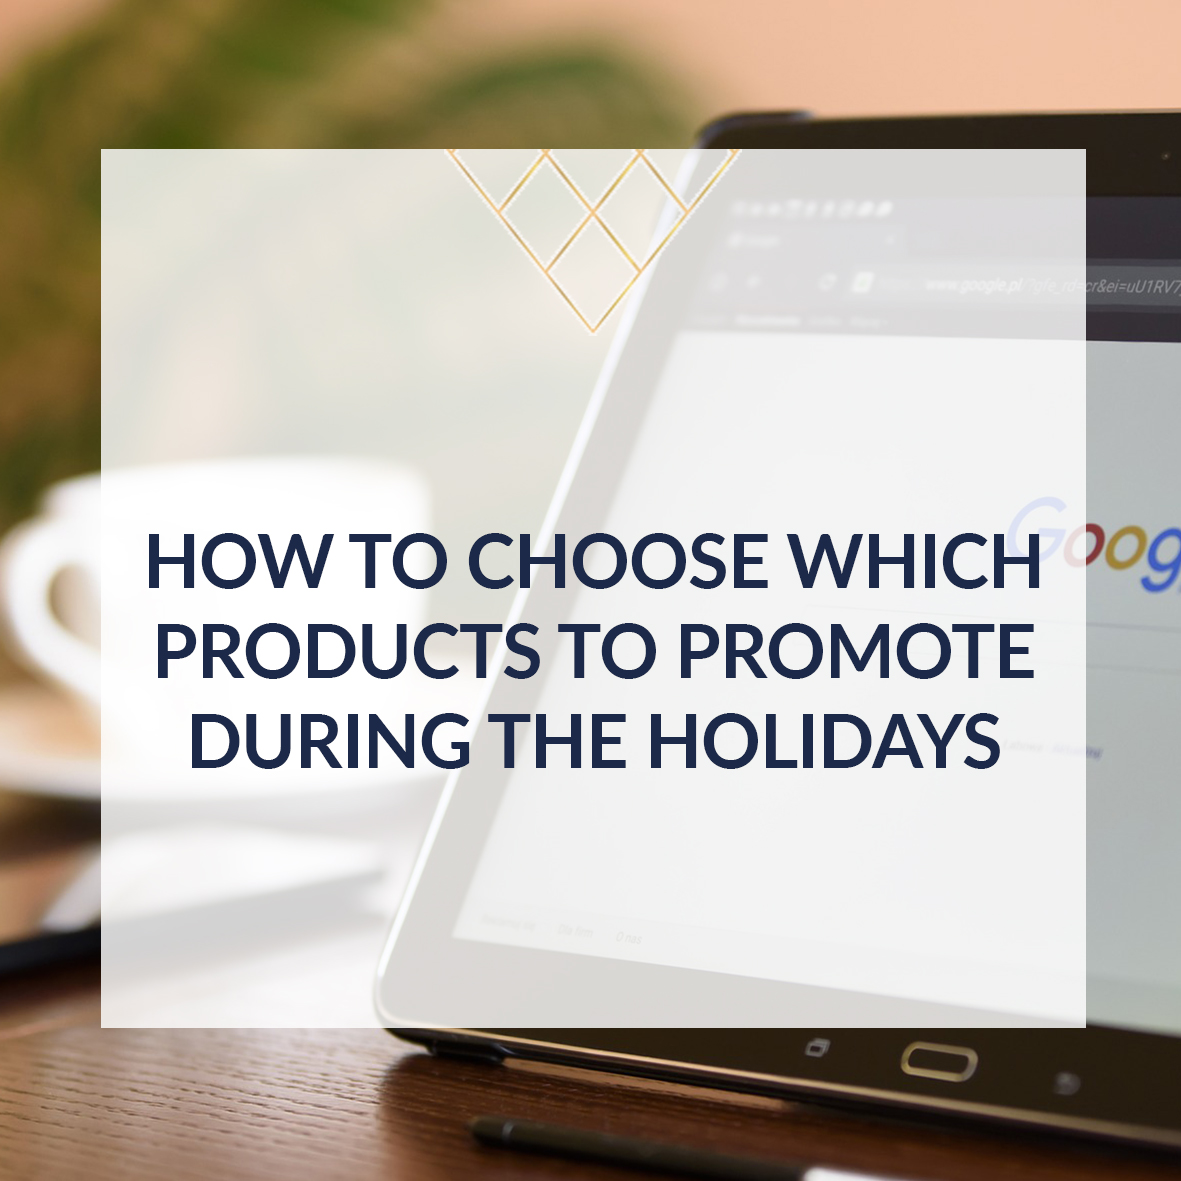 How_To_Choose_Which_Products_To_Promote_During_the_Holidays